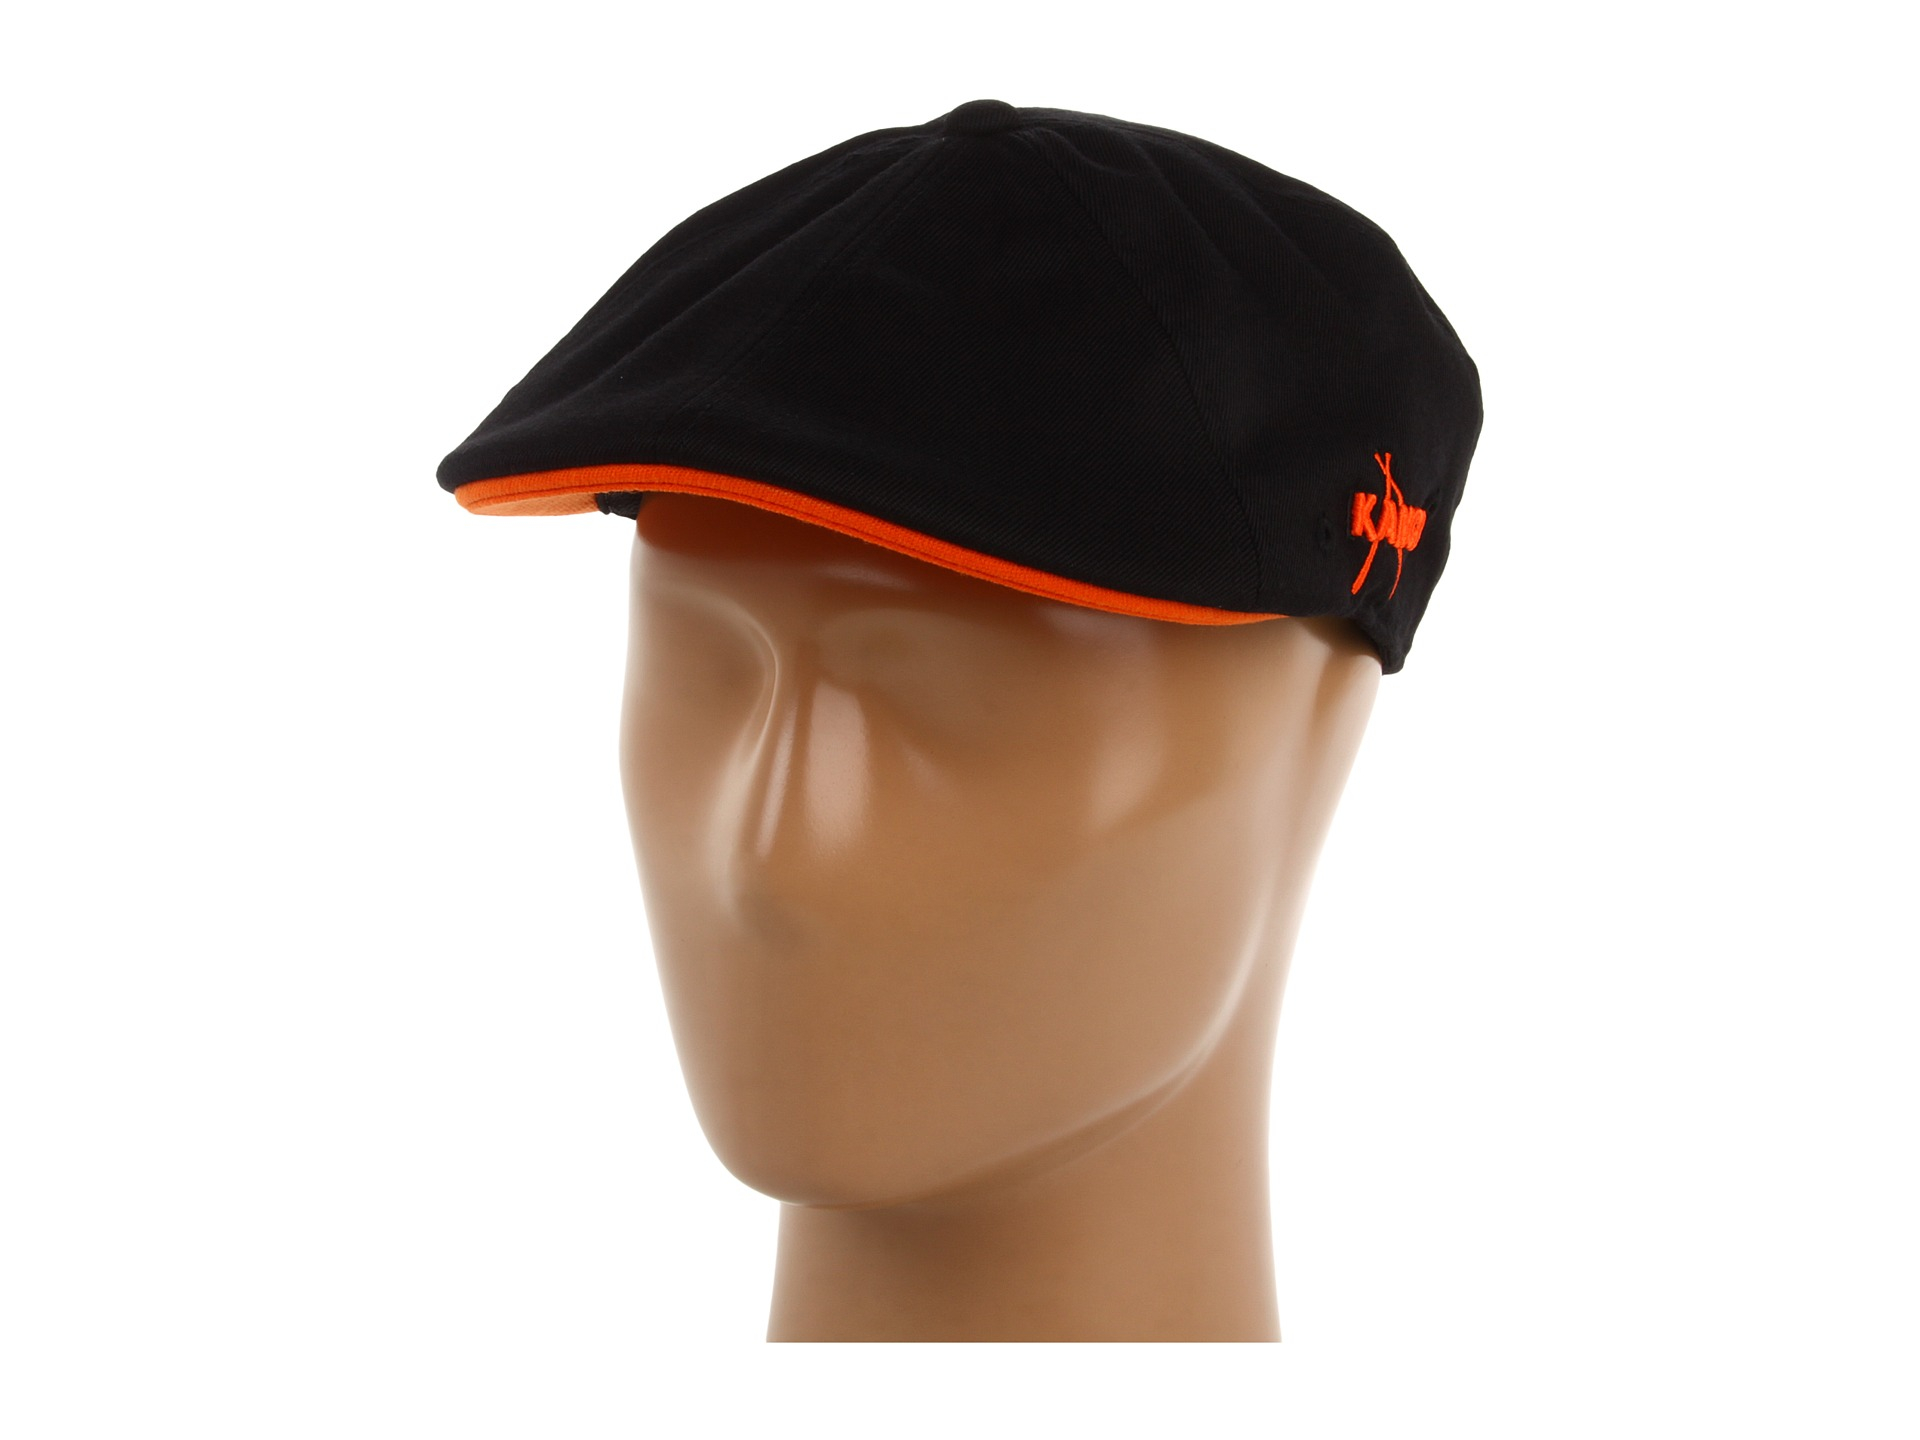 Lyst - Kangol Championship 504 Cap in Black for Men e5d9ac04657